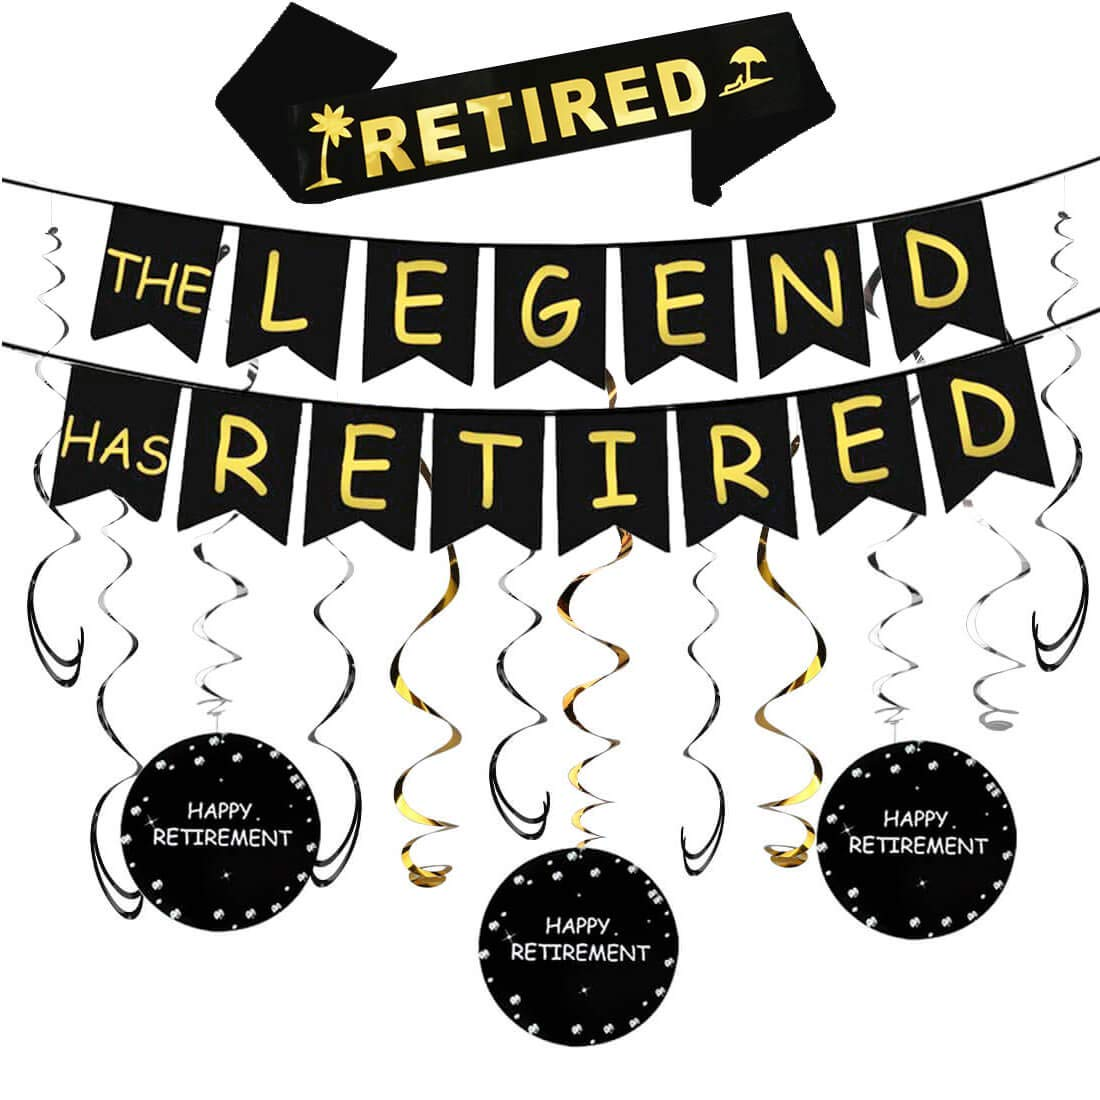 Happy retirement banner clipart clip royalty free Amazon.com: Happy Retirement Party Decorations Kit - The Legend Has ... clip royalty free